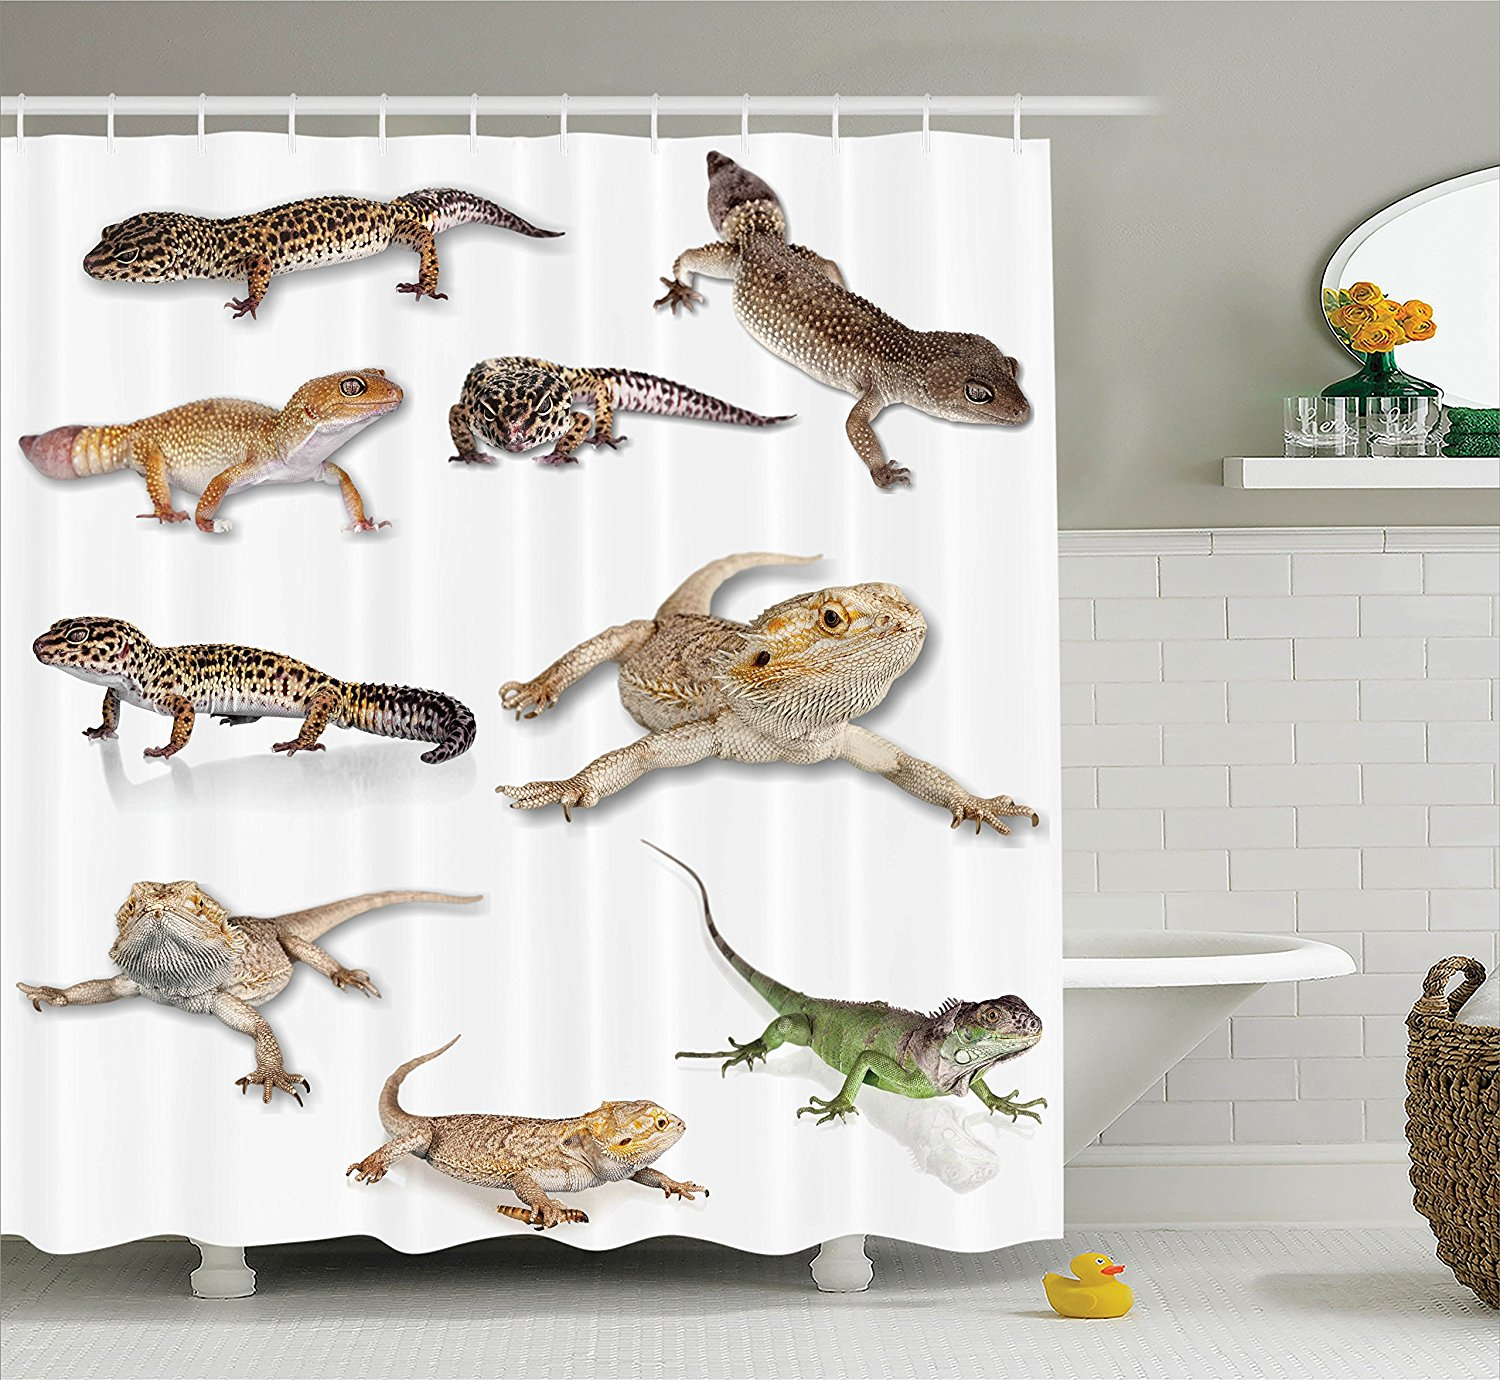 Reptile Decor Shower Curtain Set By , Multi Colored Stari...